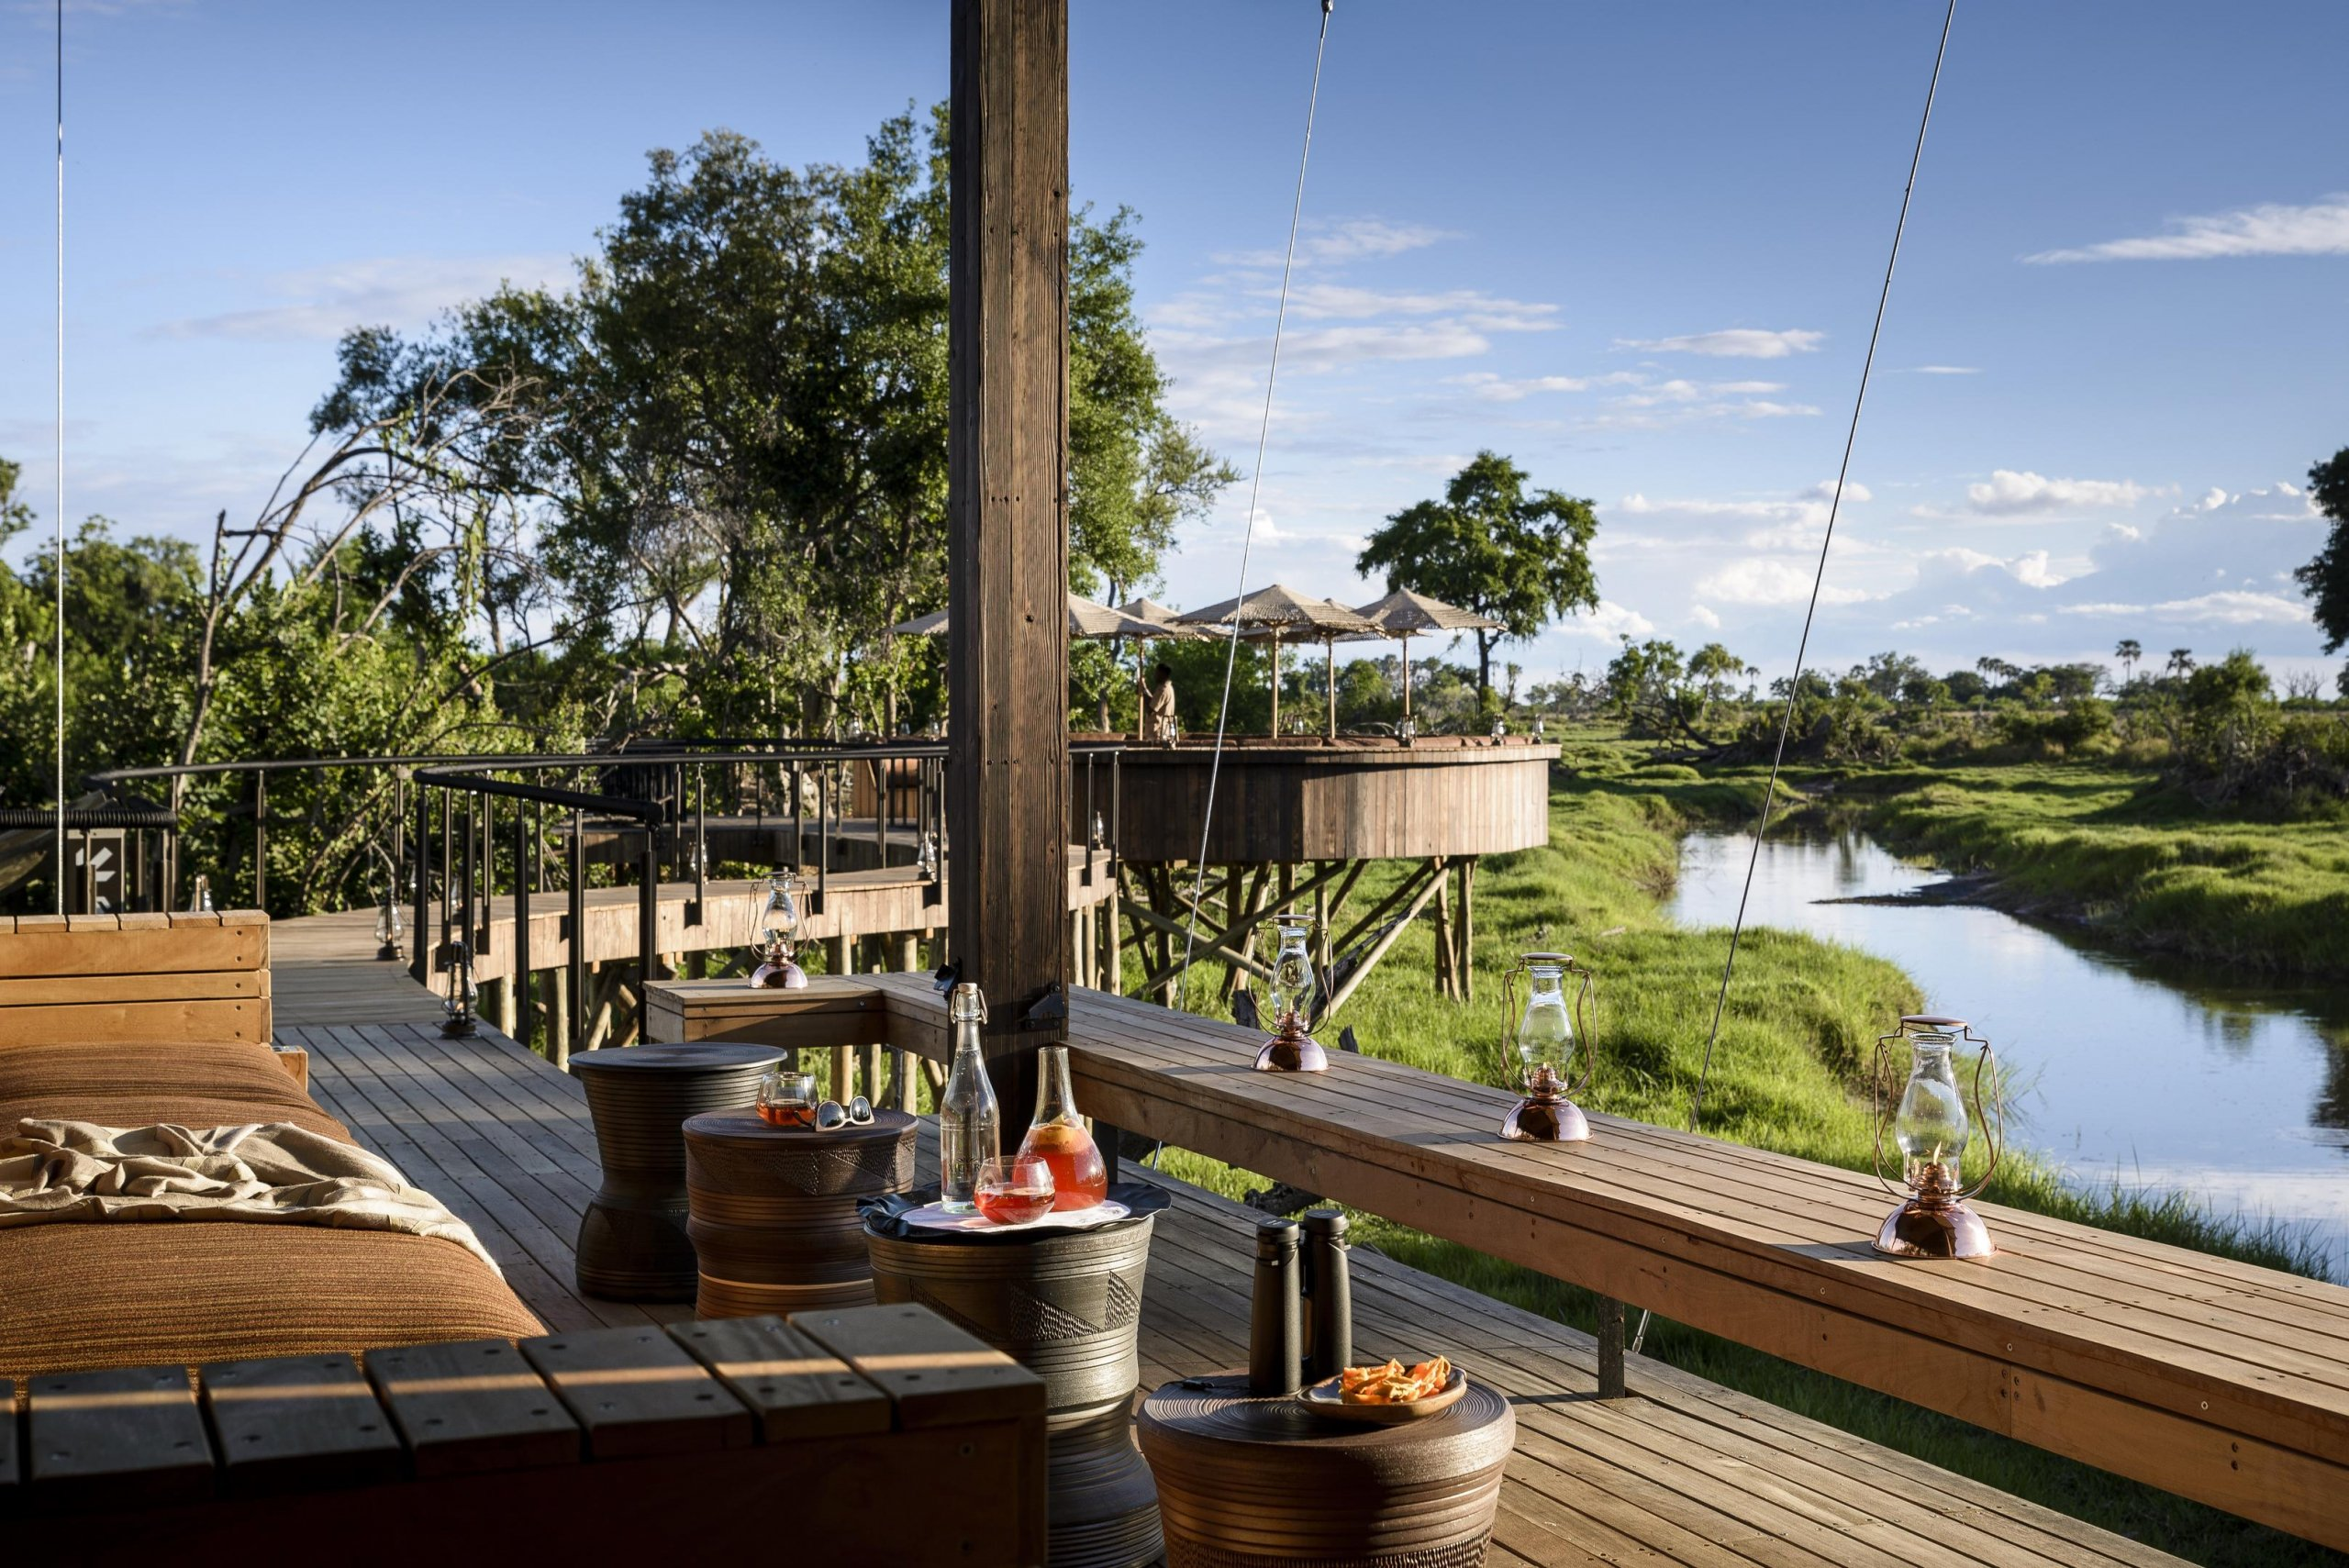 Best New Safari Lodges Opening in 2020 & 2021